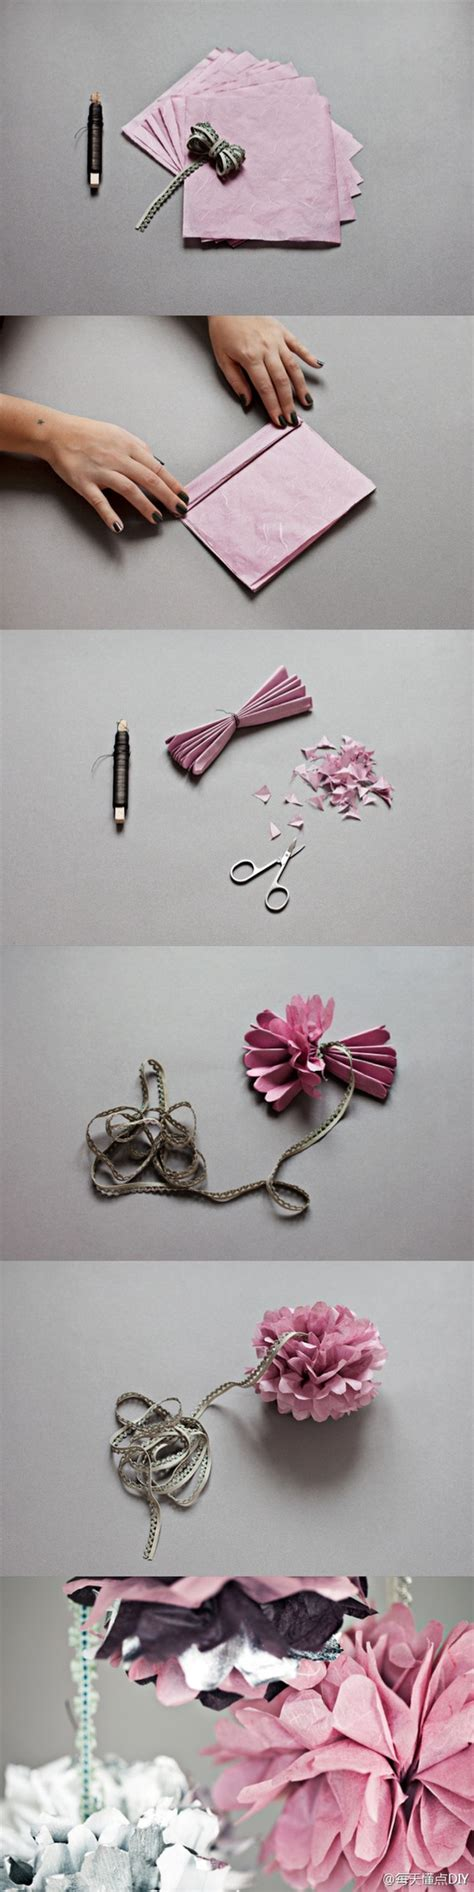 crafts for teenagers 10 diy crafts ideas for diy ideas tips